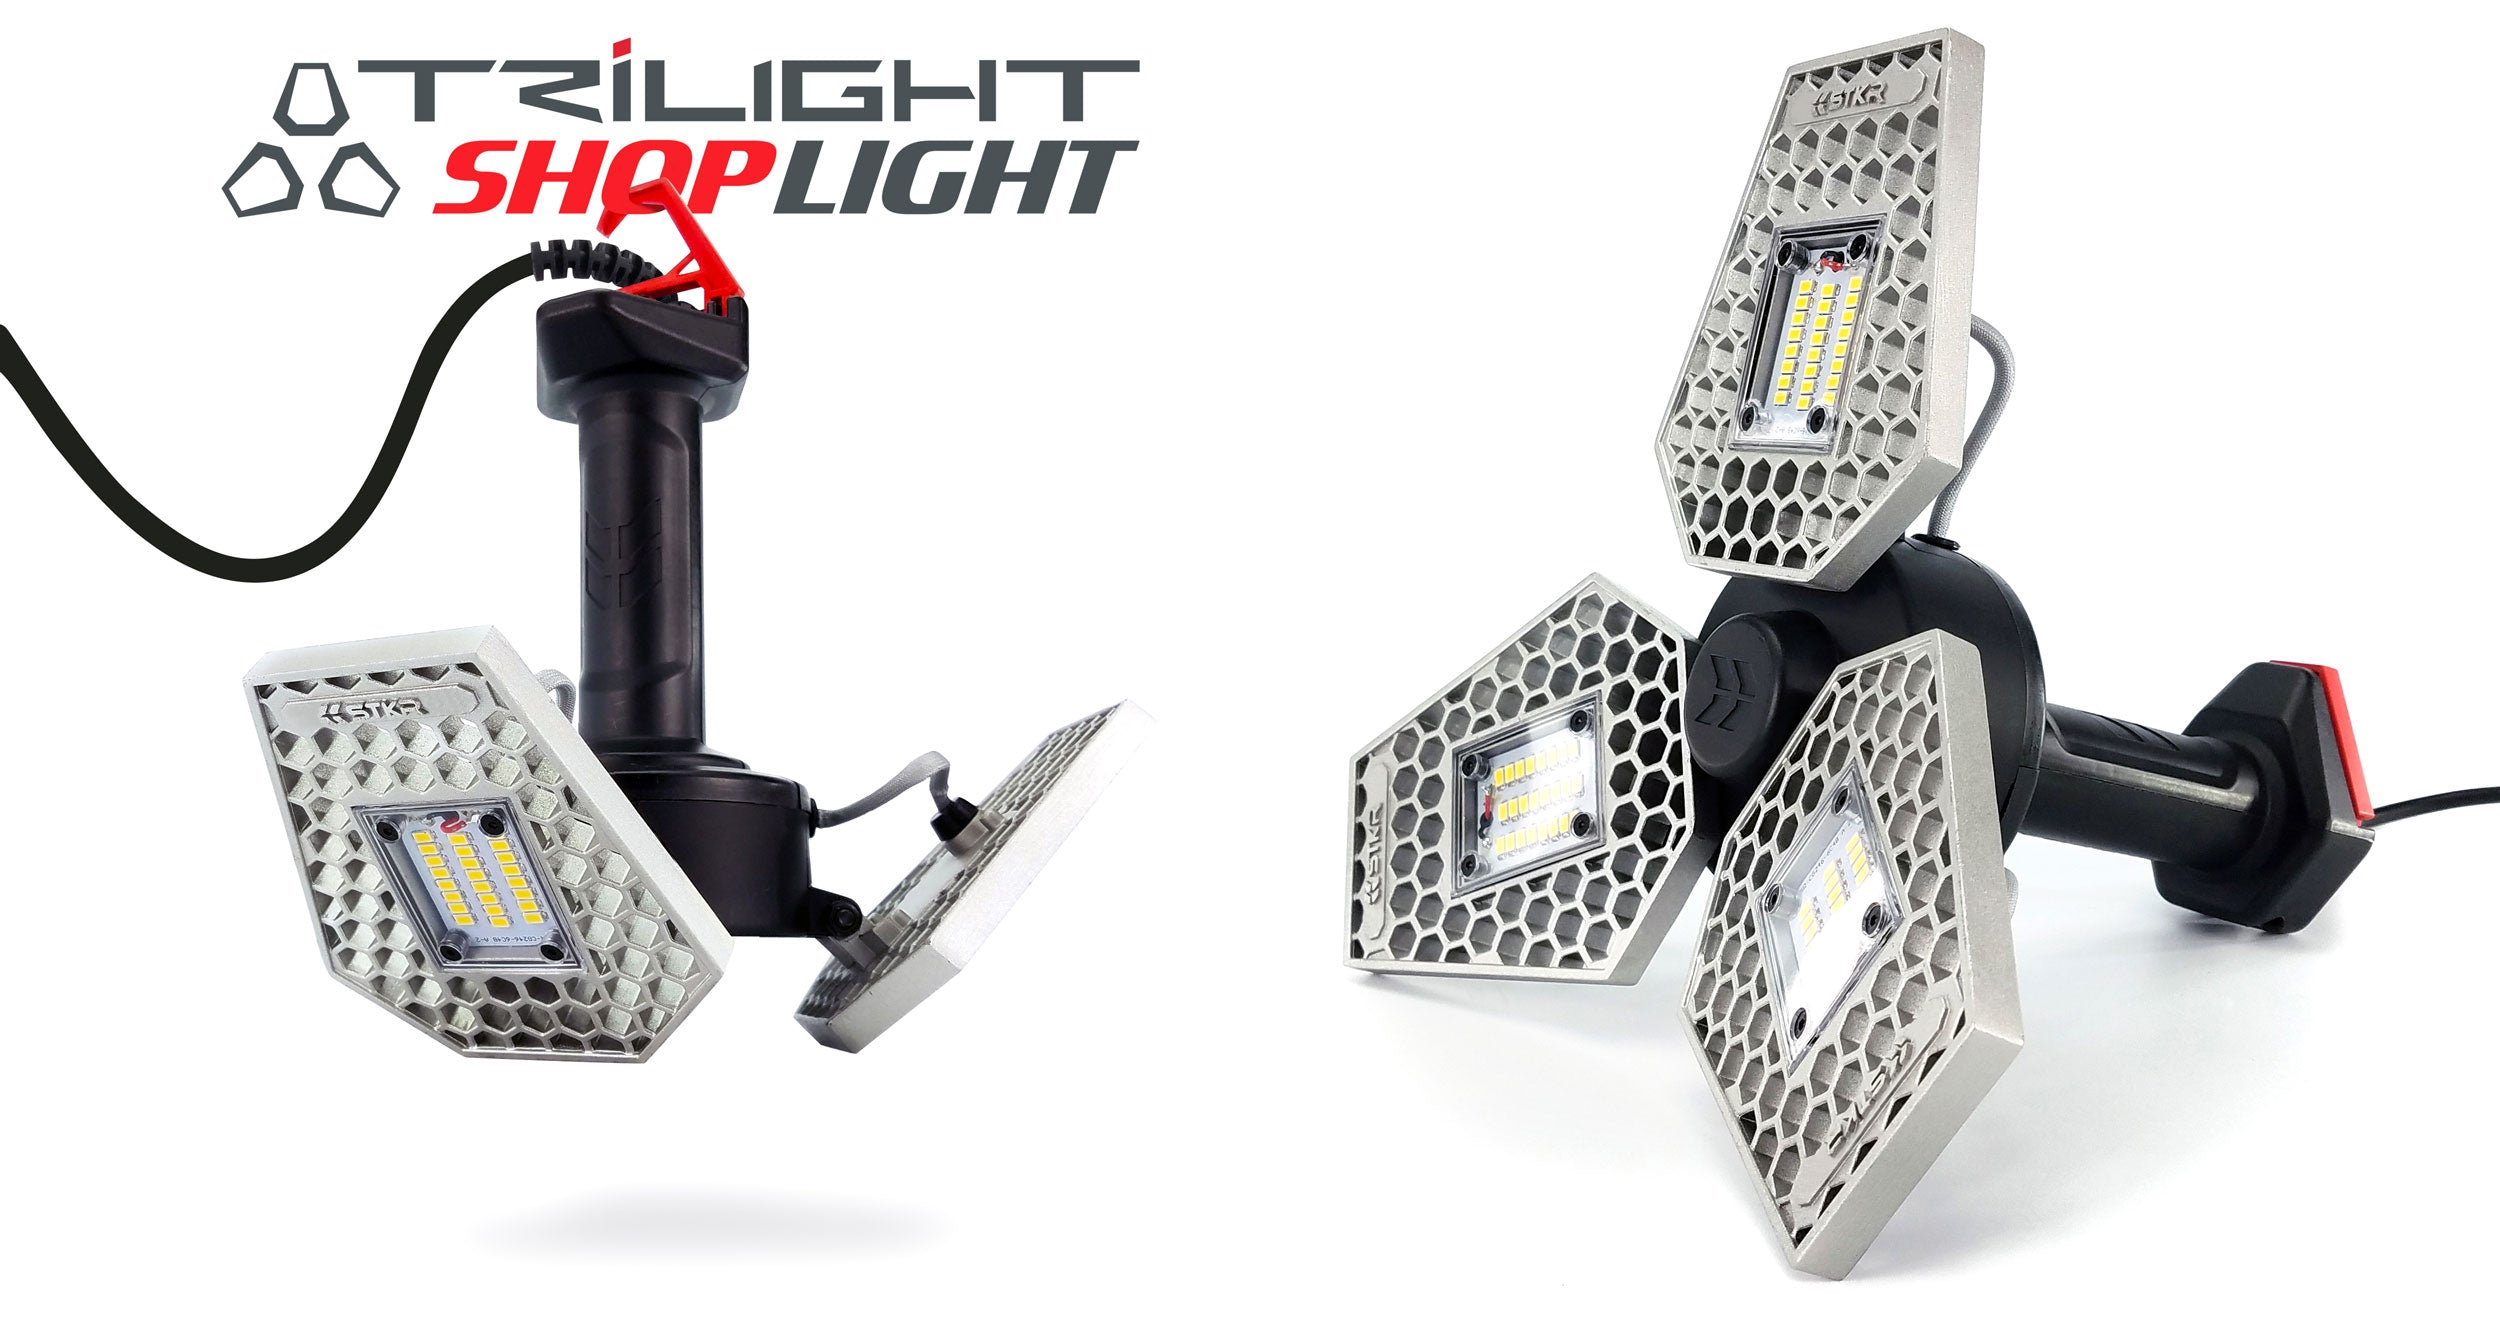 STKR Concepts TRiLIGHT ShopLight - 2-in-1 Shop Light and Drop Light - Striker